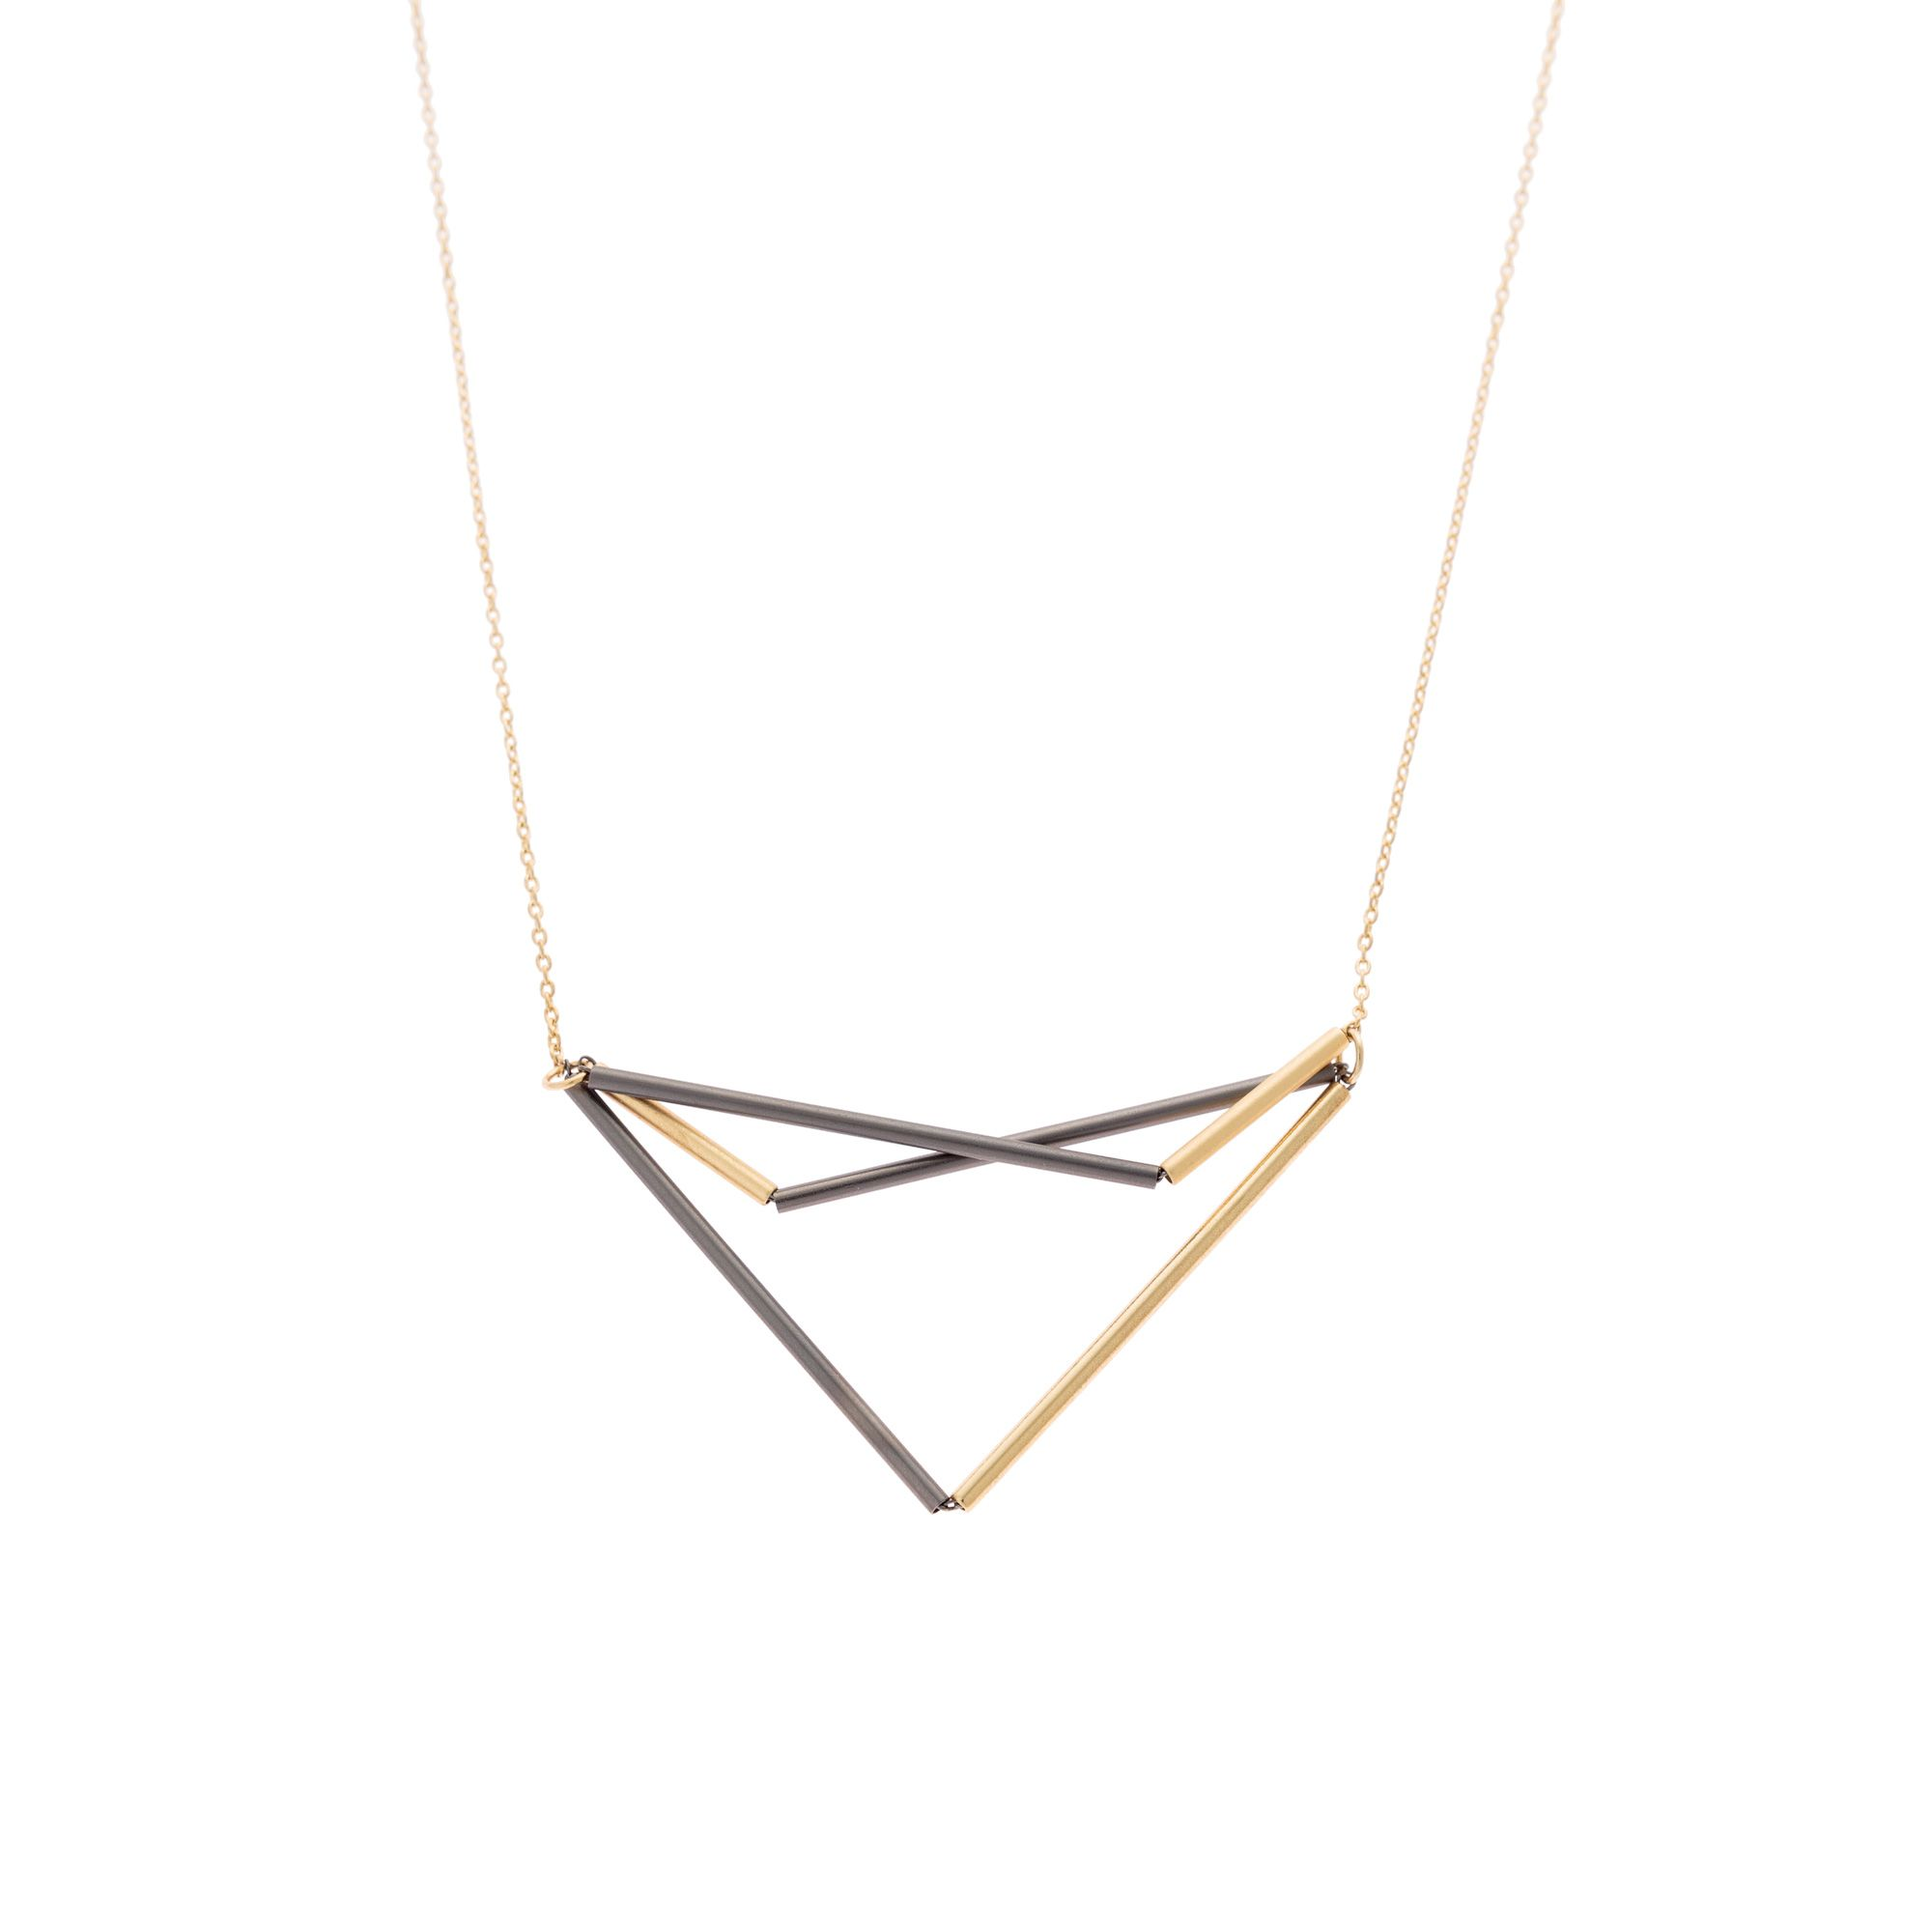 necklaces adjustable necklace triangular pendant jewellery zsiska white from